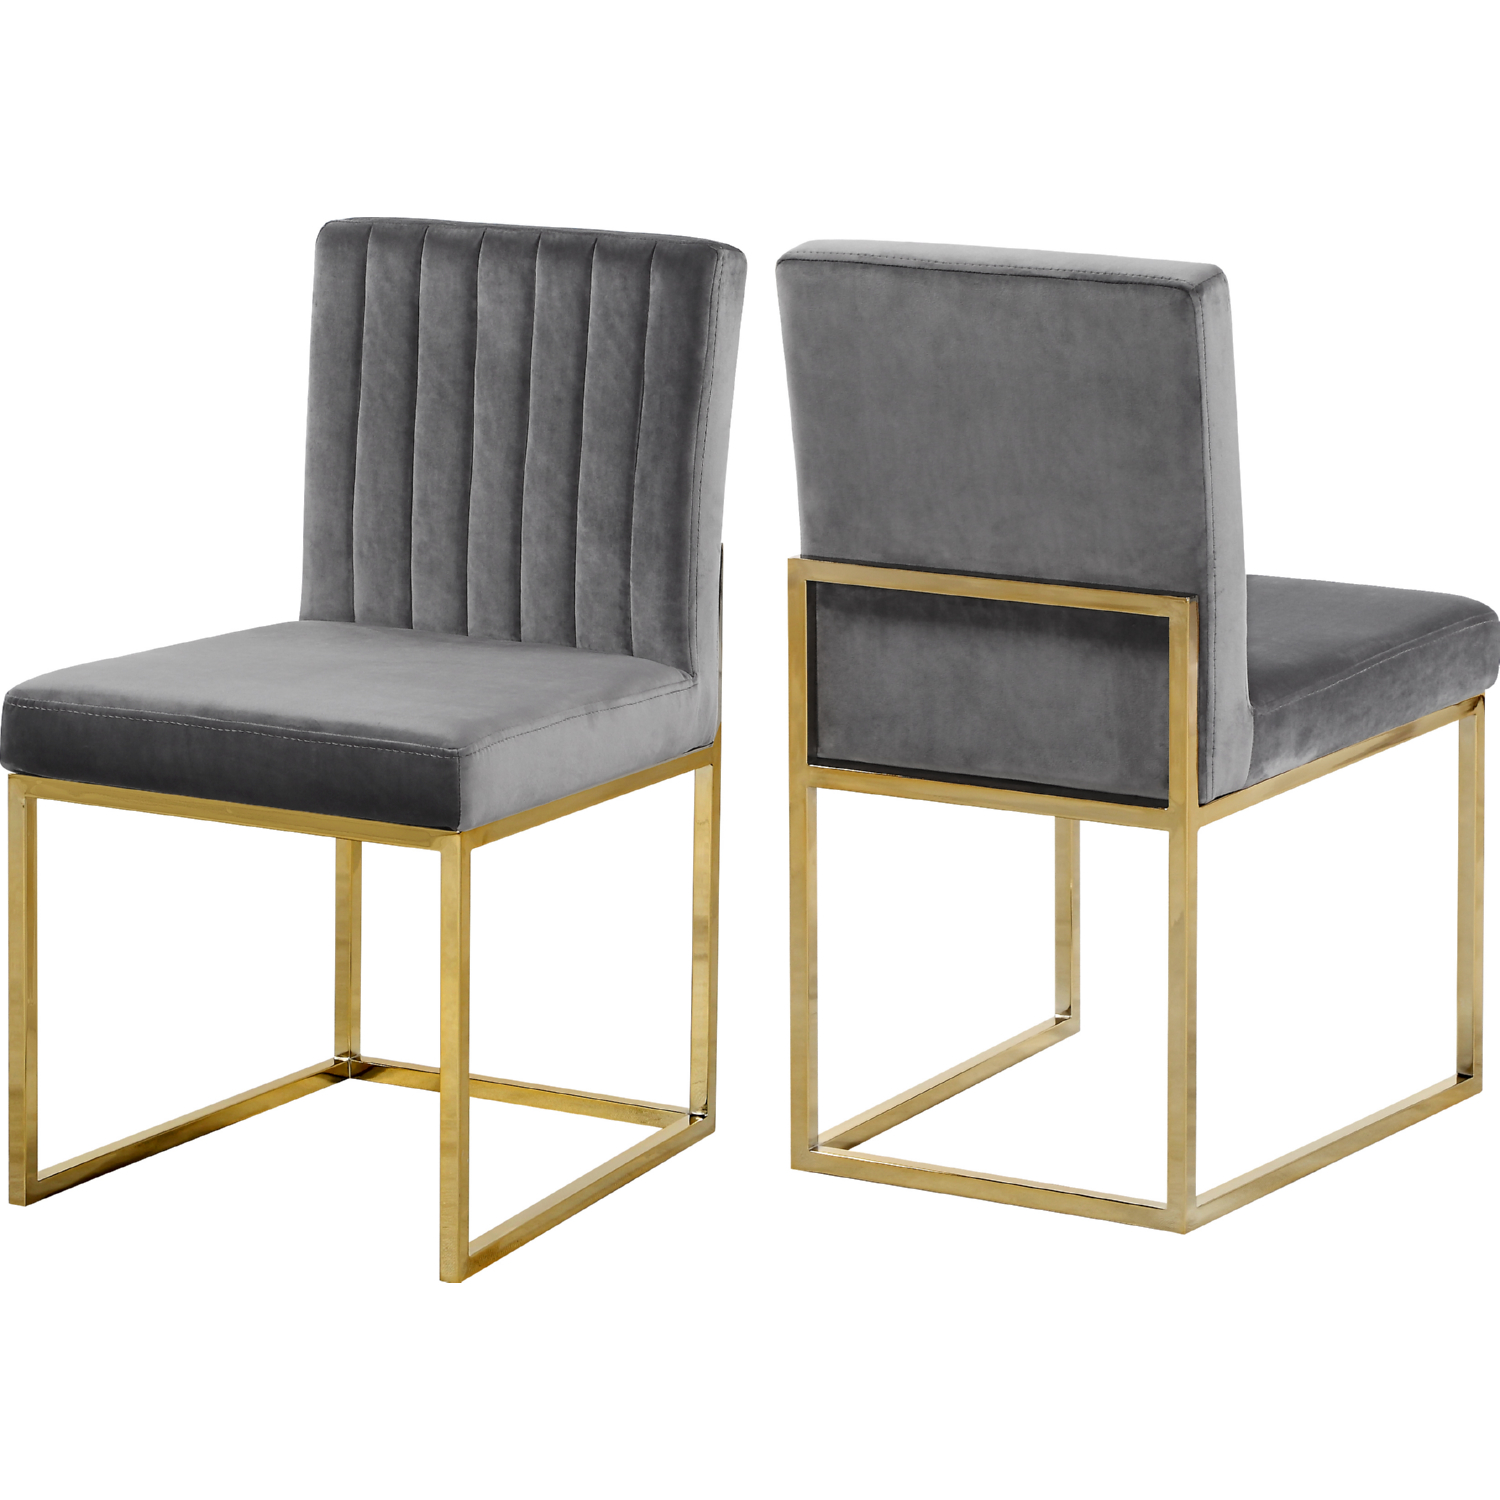 Giselle Dining Chair In Channel Tufted Grey Velvet Gold Set Of 2 By Meridian Furniture